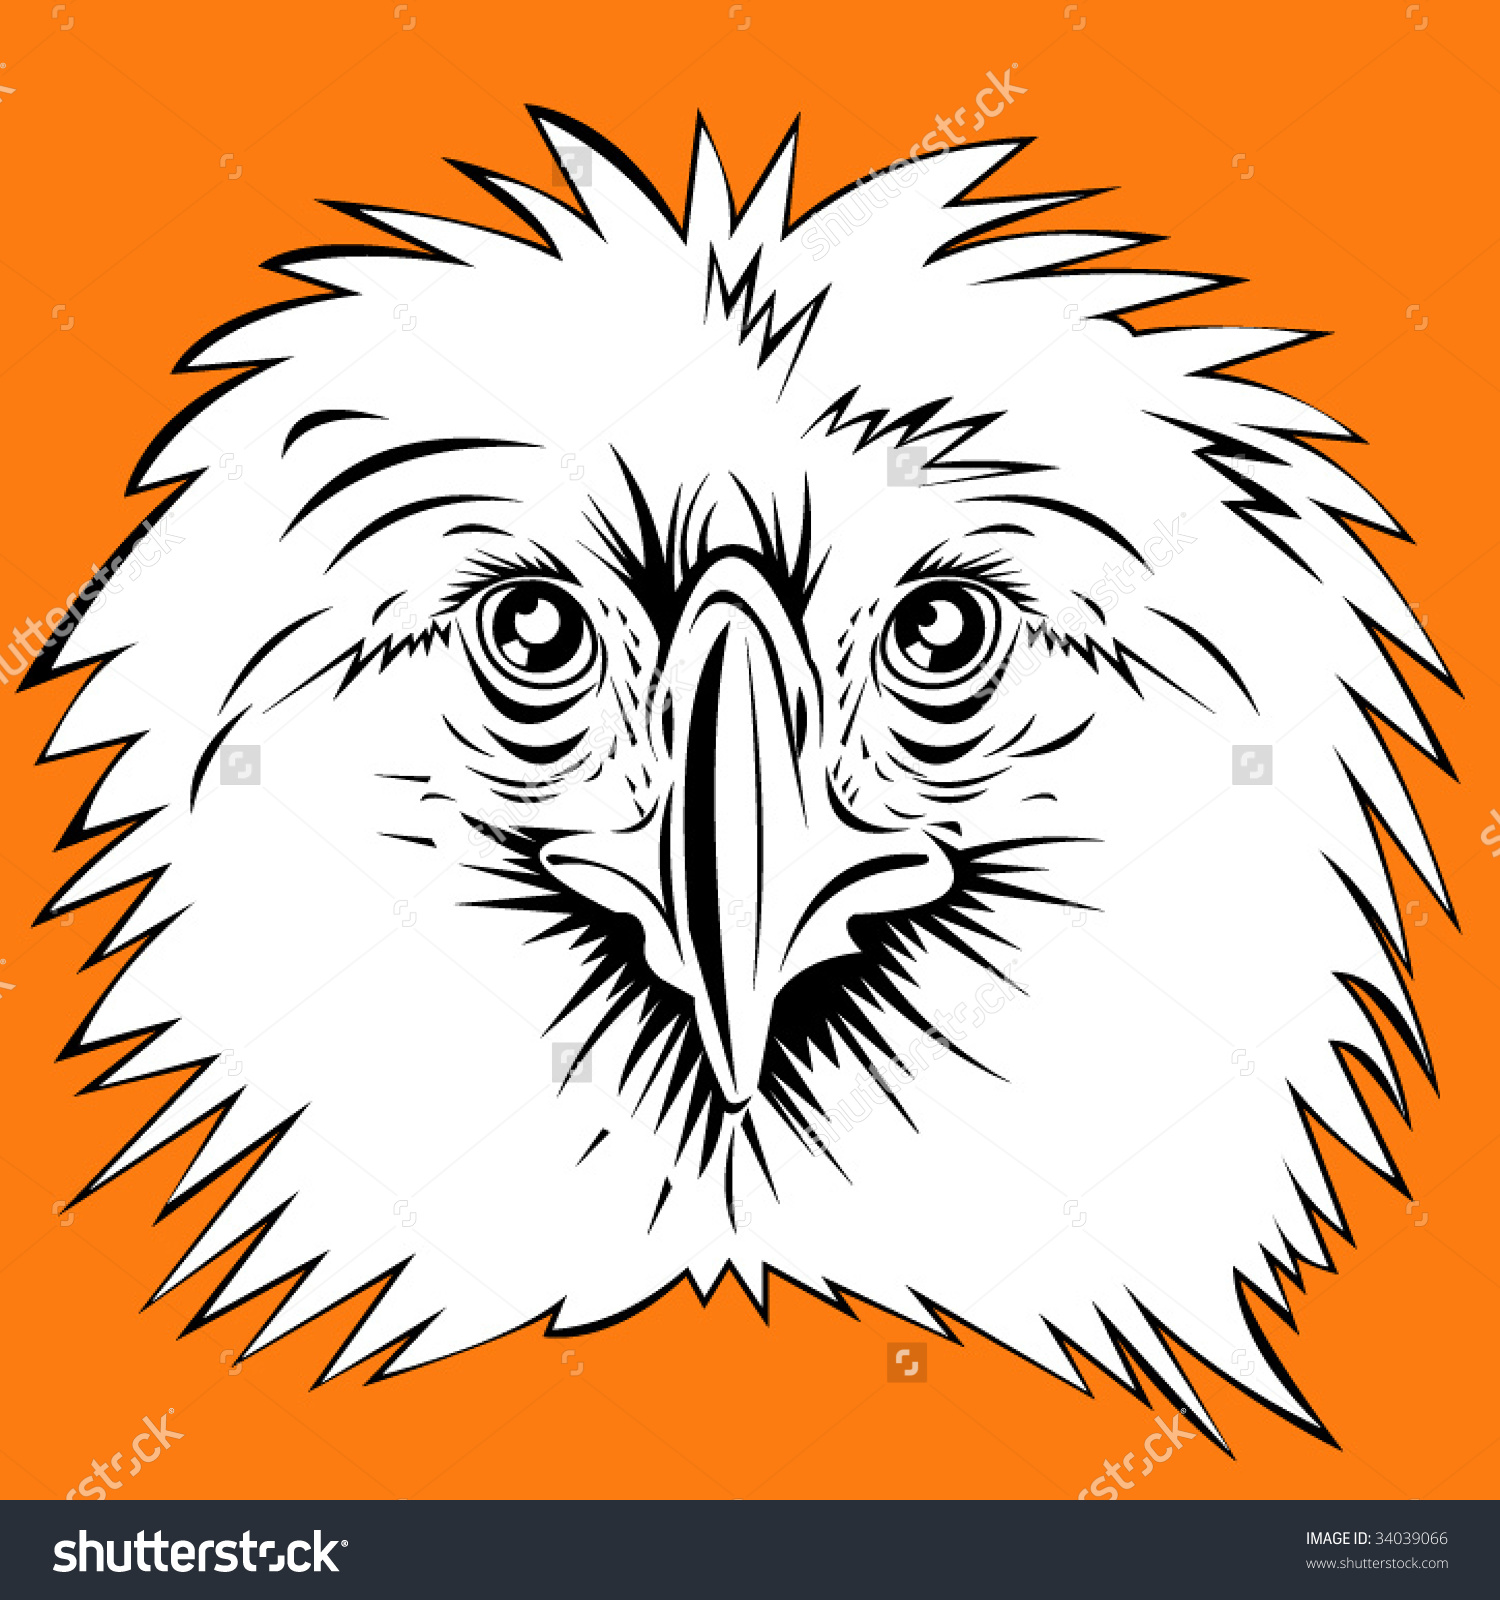 The Philippine Eagle clipart #19, Download drawings